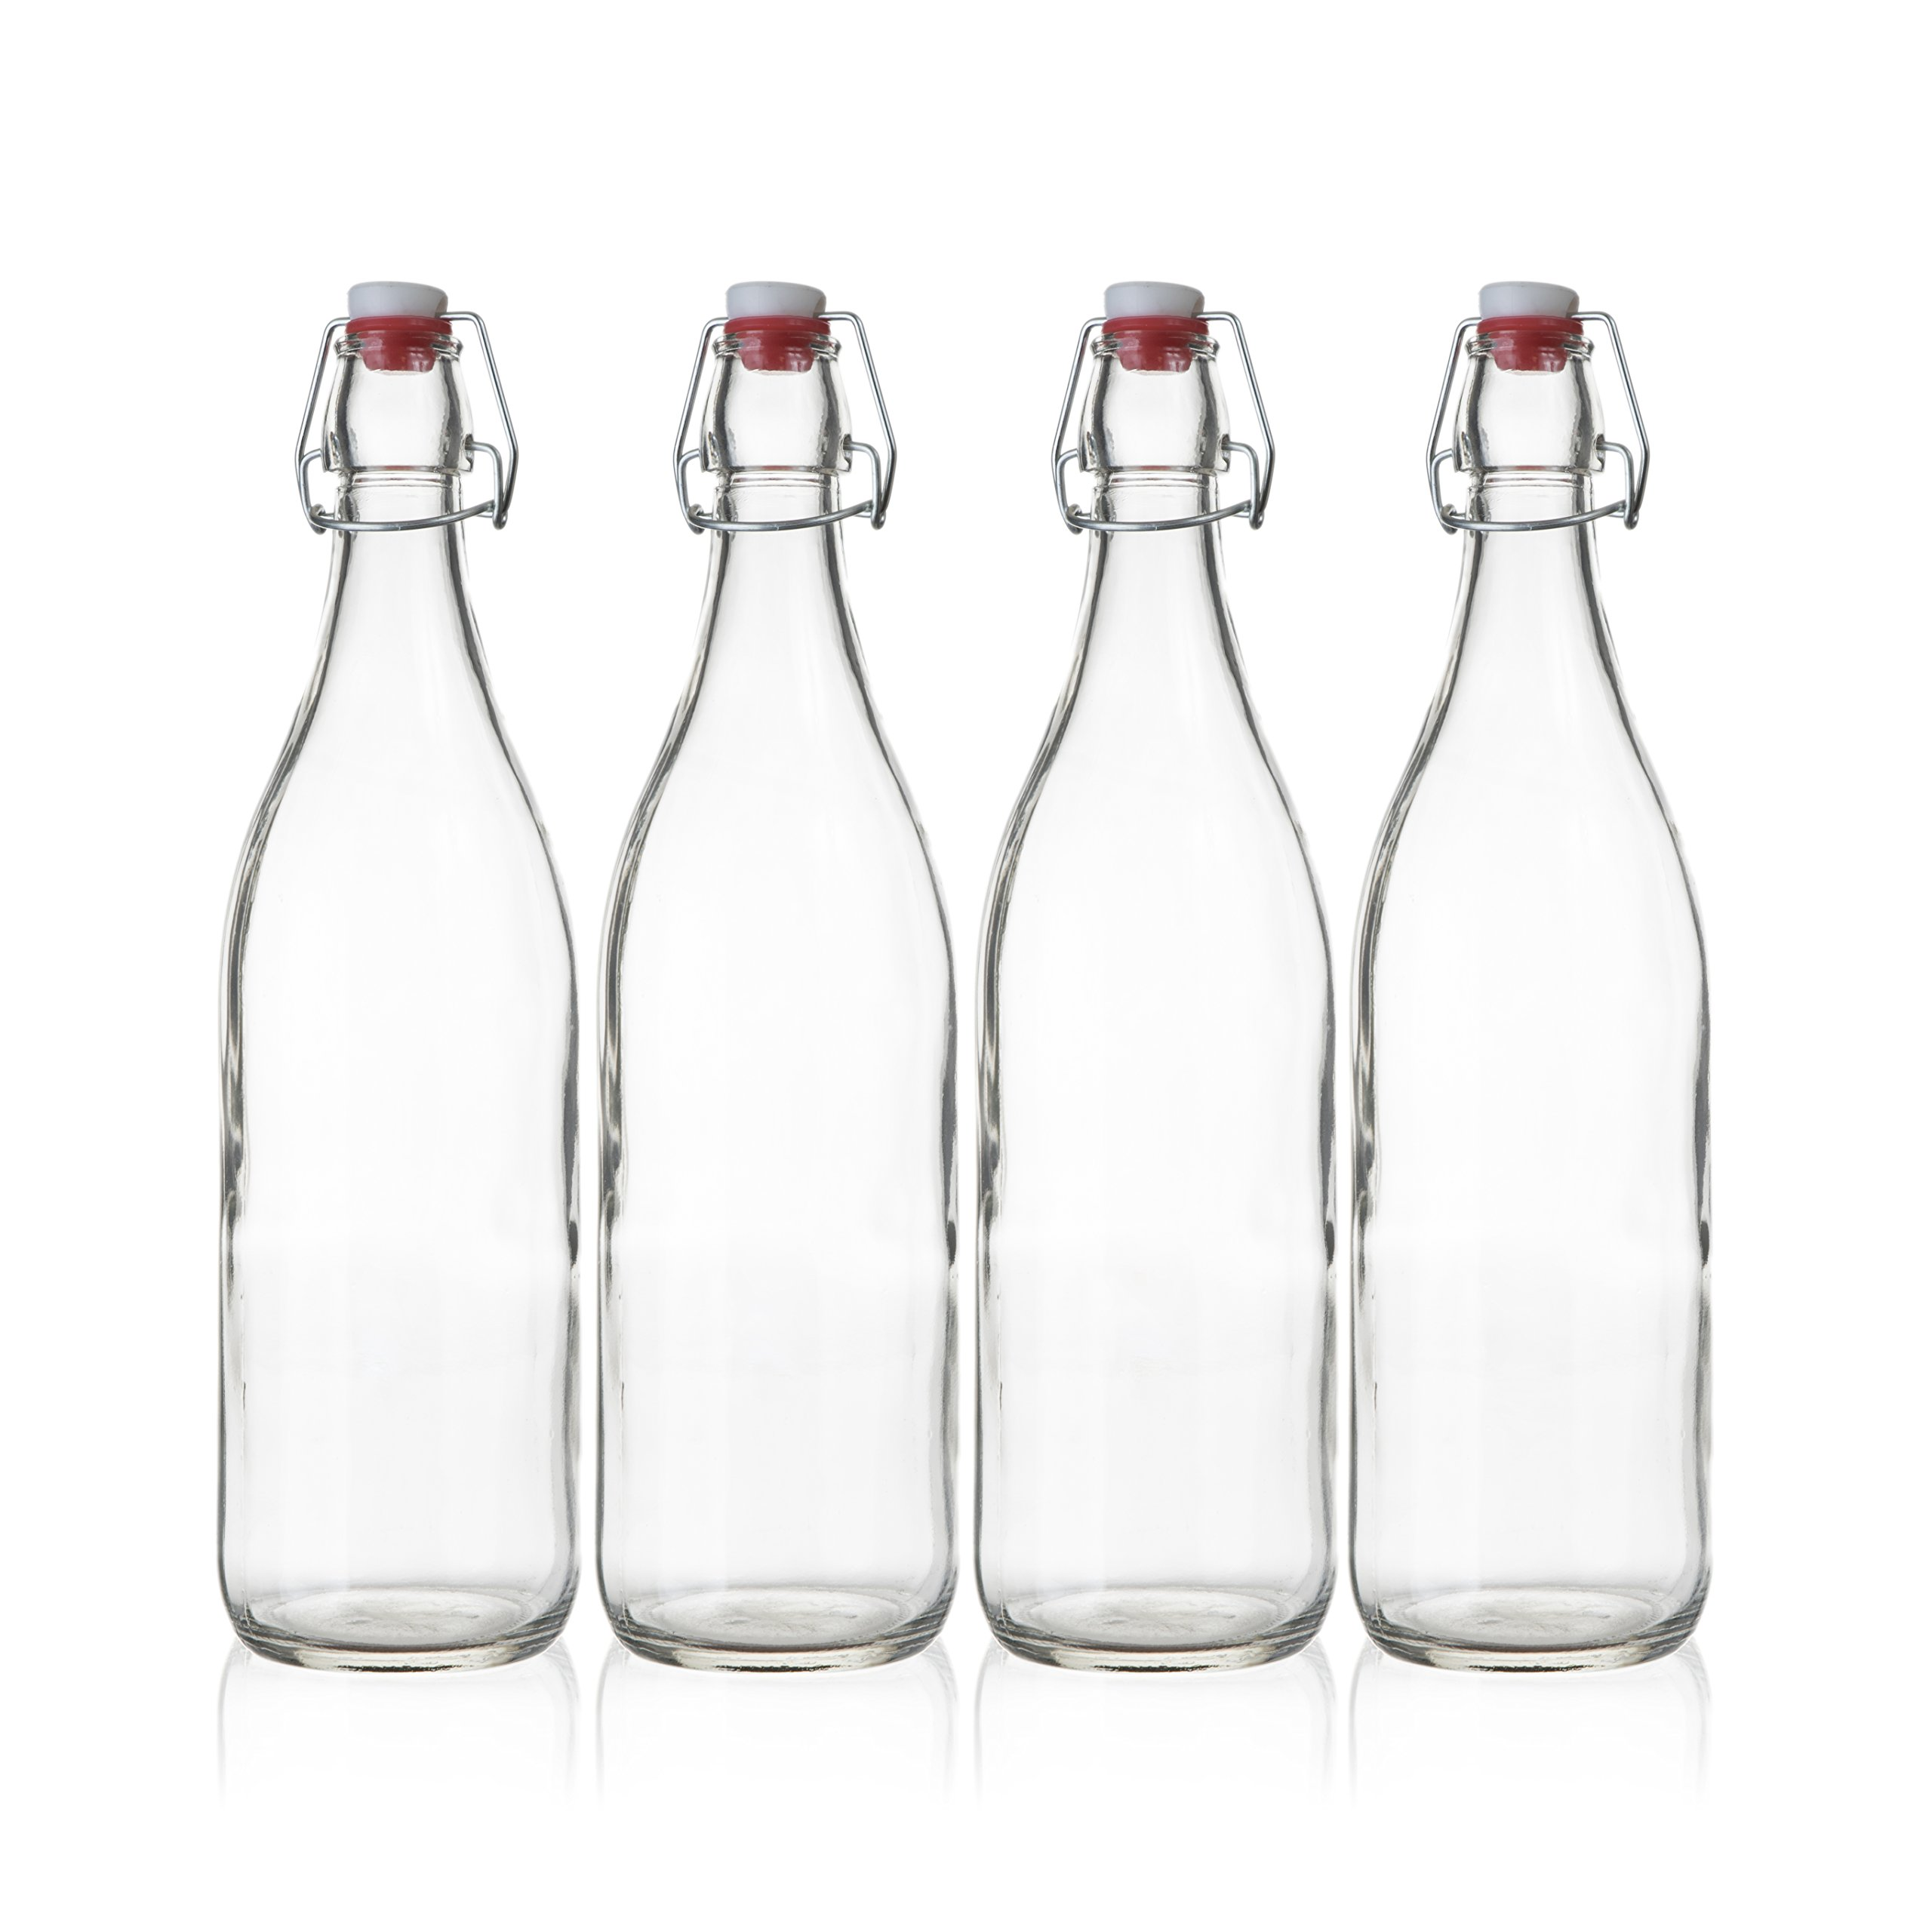 Seacoast Clear Glass Bottle with Swing Top Stopper, 33.75 Oz Round Pack of 4